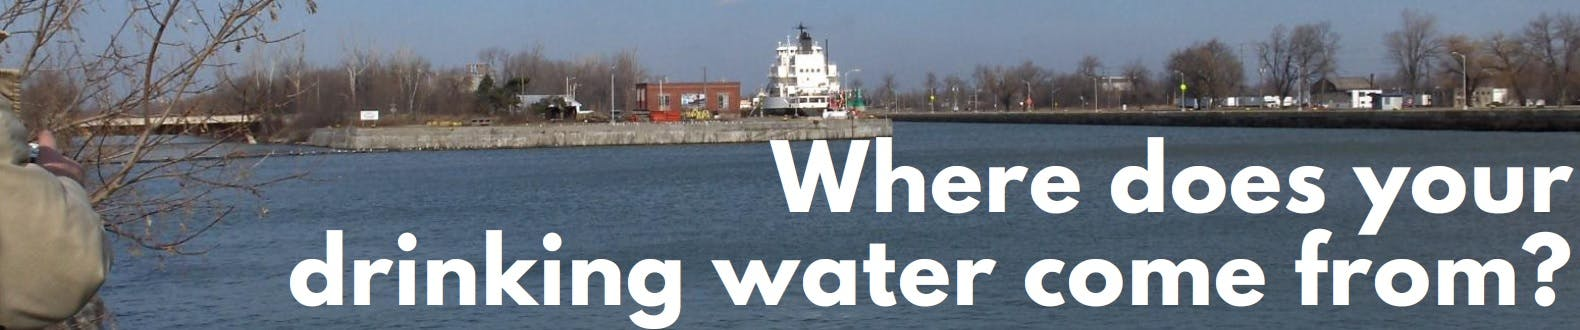 Where does your drinking water come from? Text on a banner for the project page showing a waterway, trees and a bridge.